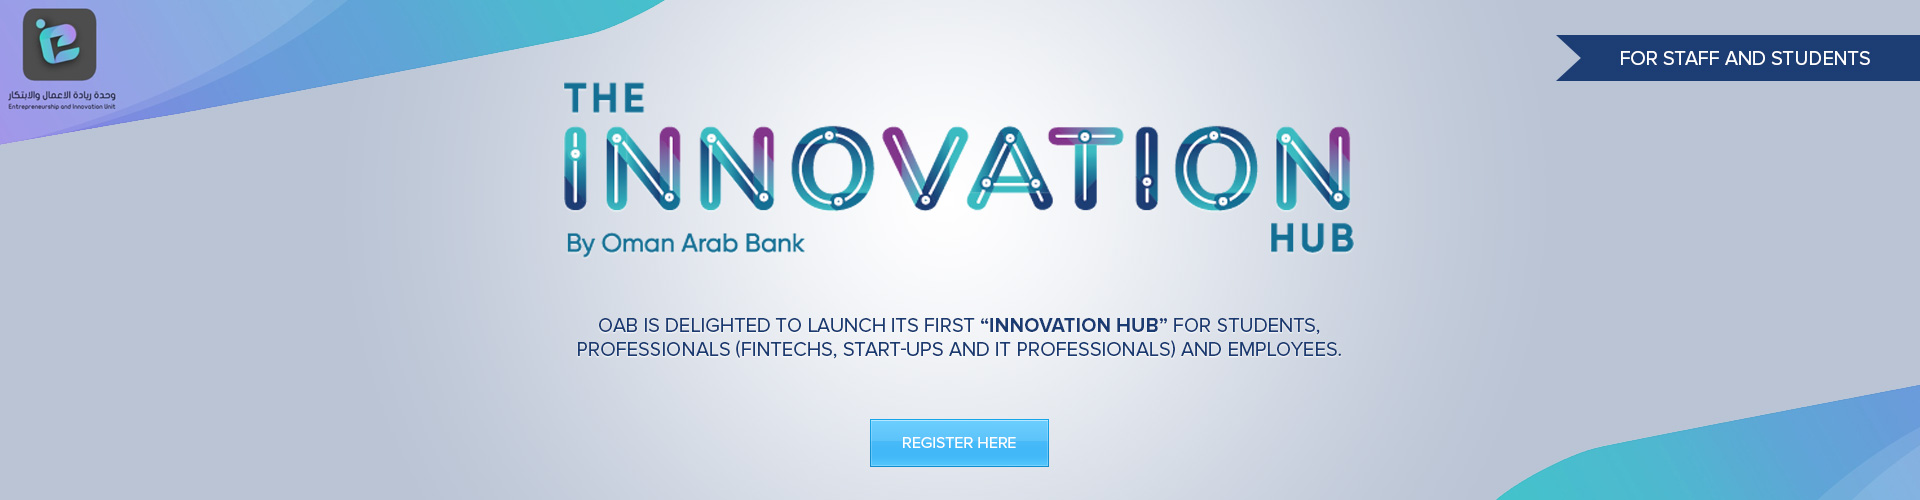 EIU - Oman Arab Bank Initiative Innovation Hub